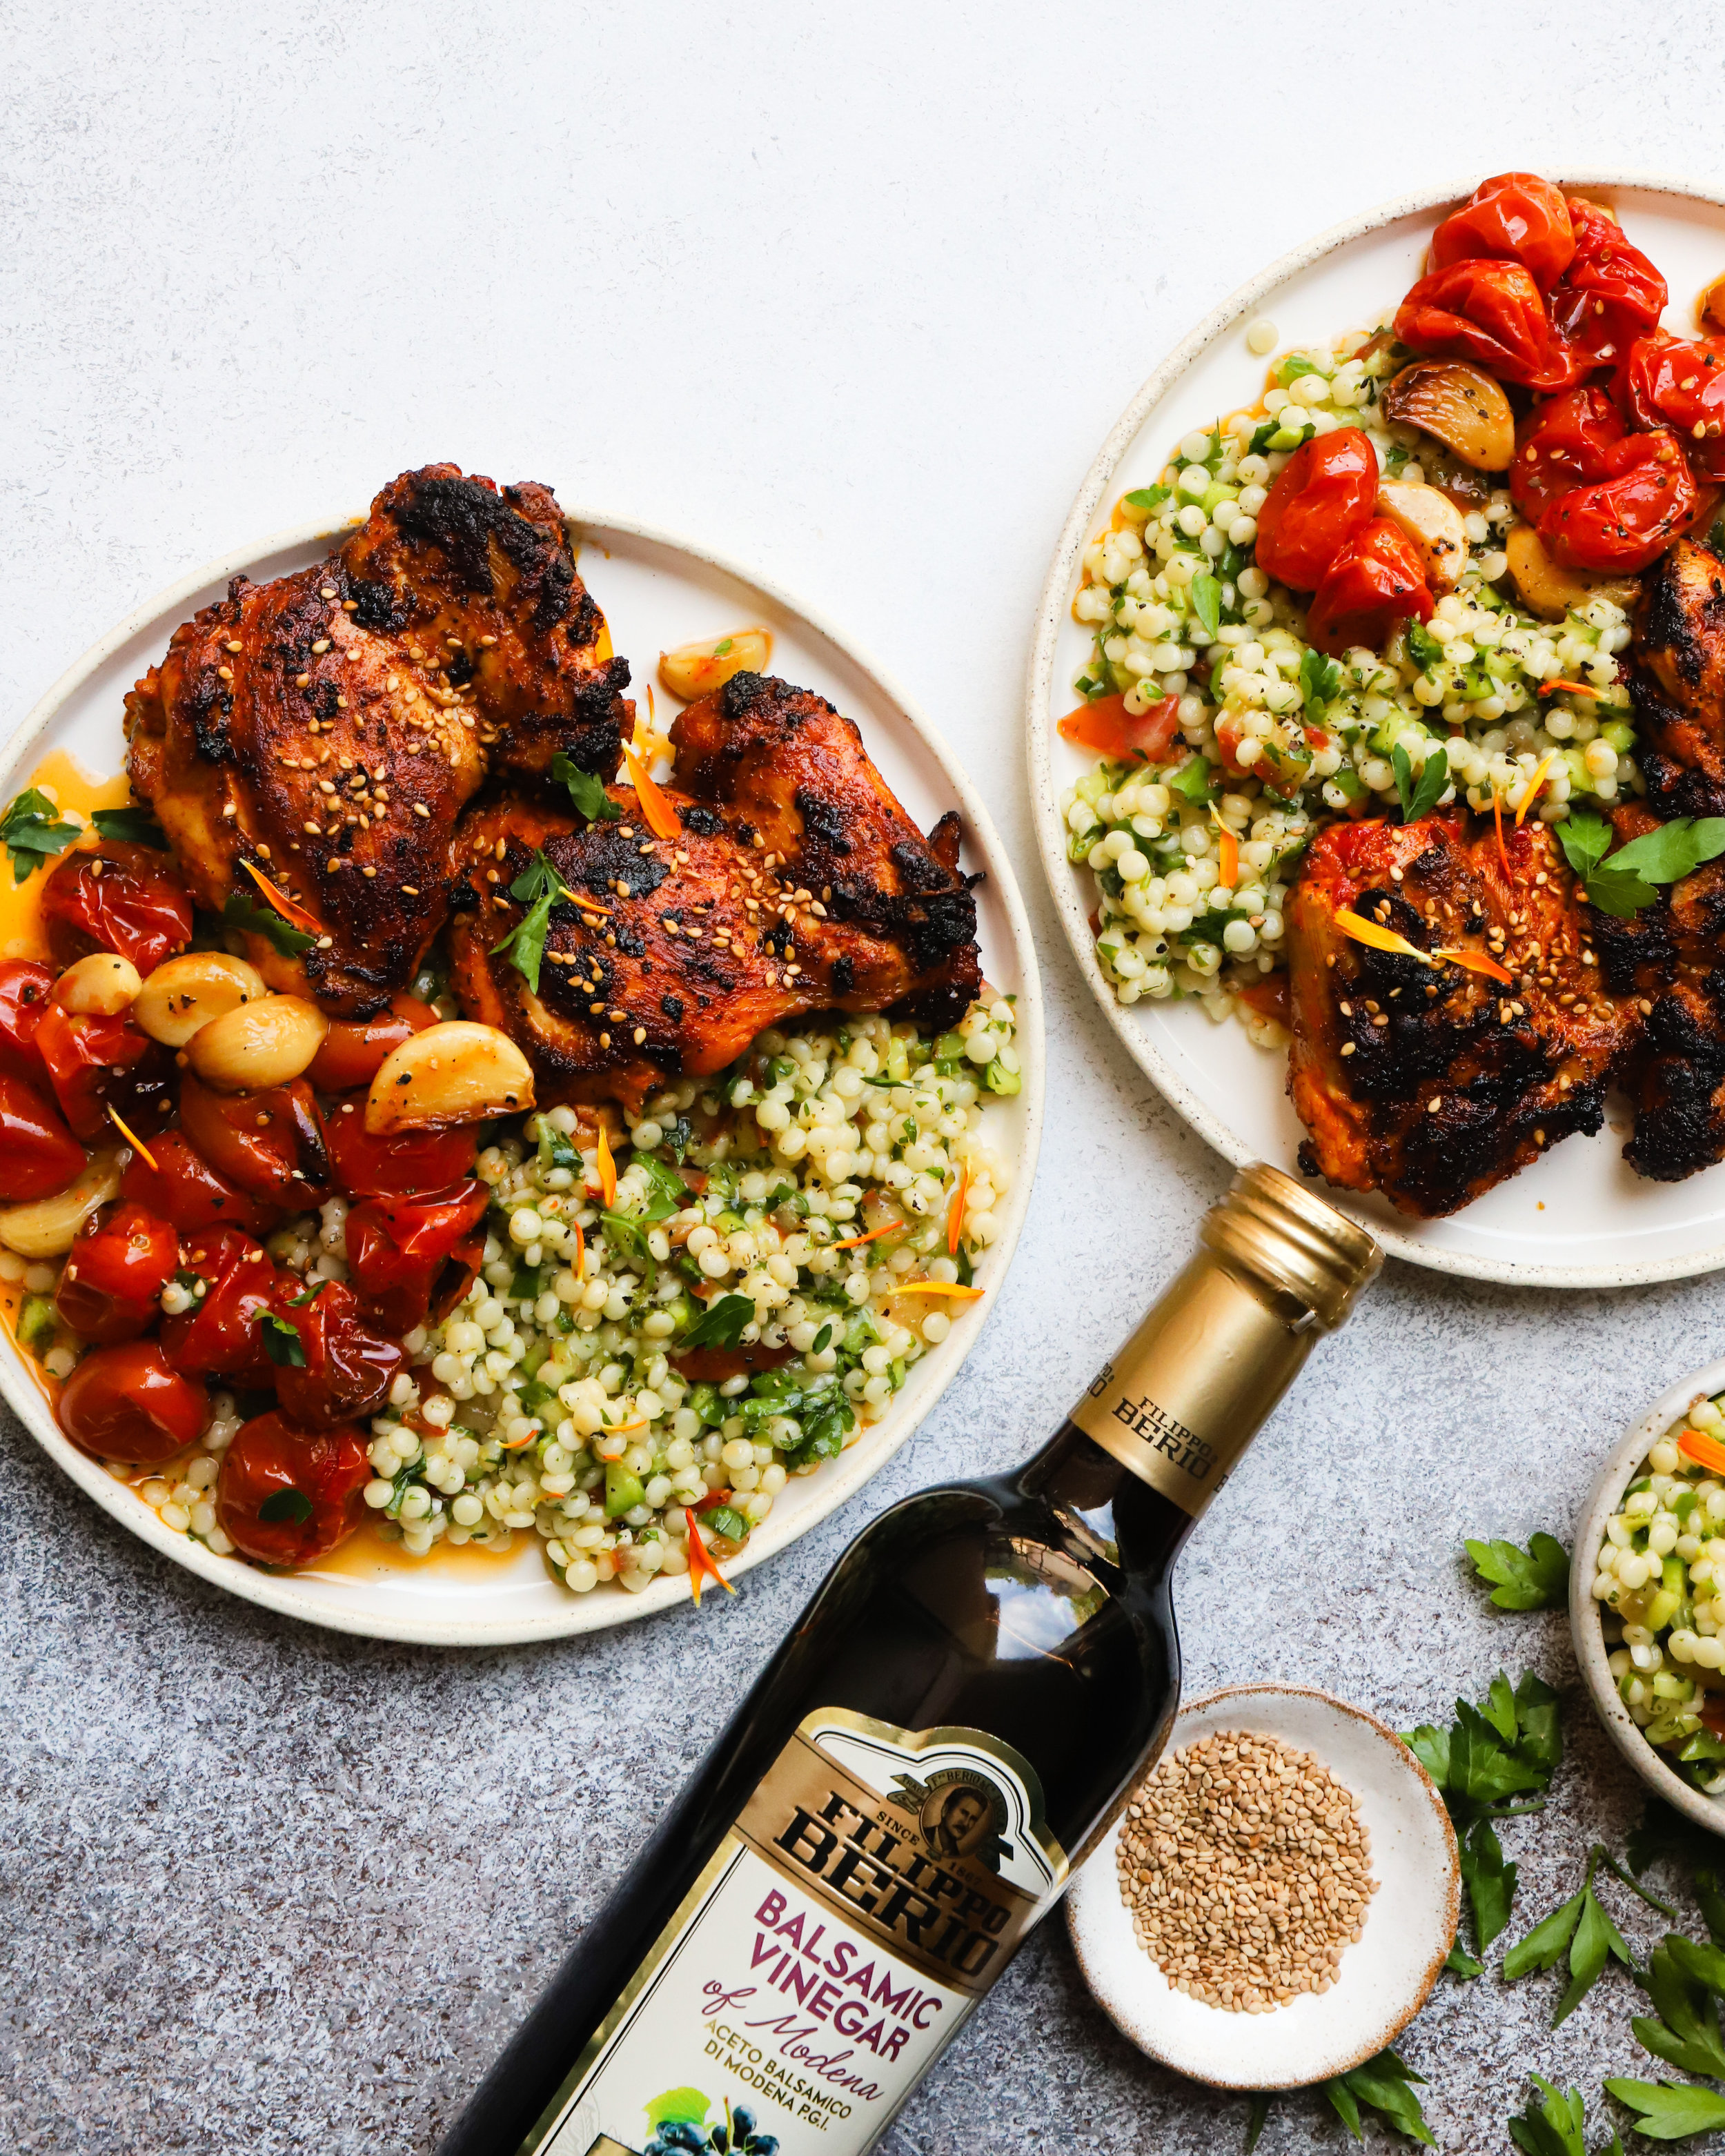 Calabrian Balsamic Chicken Thighs